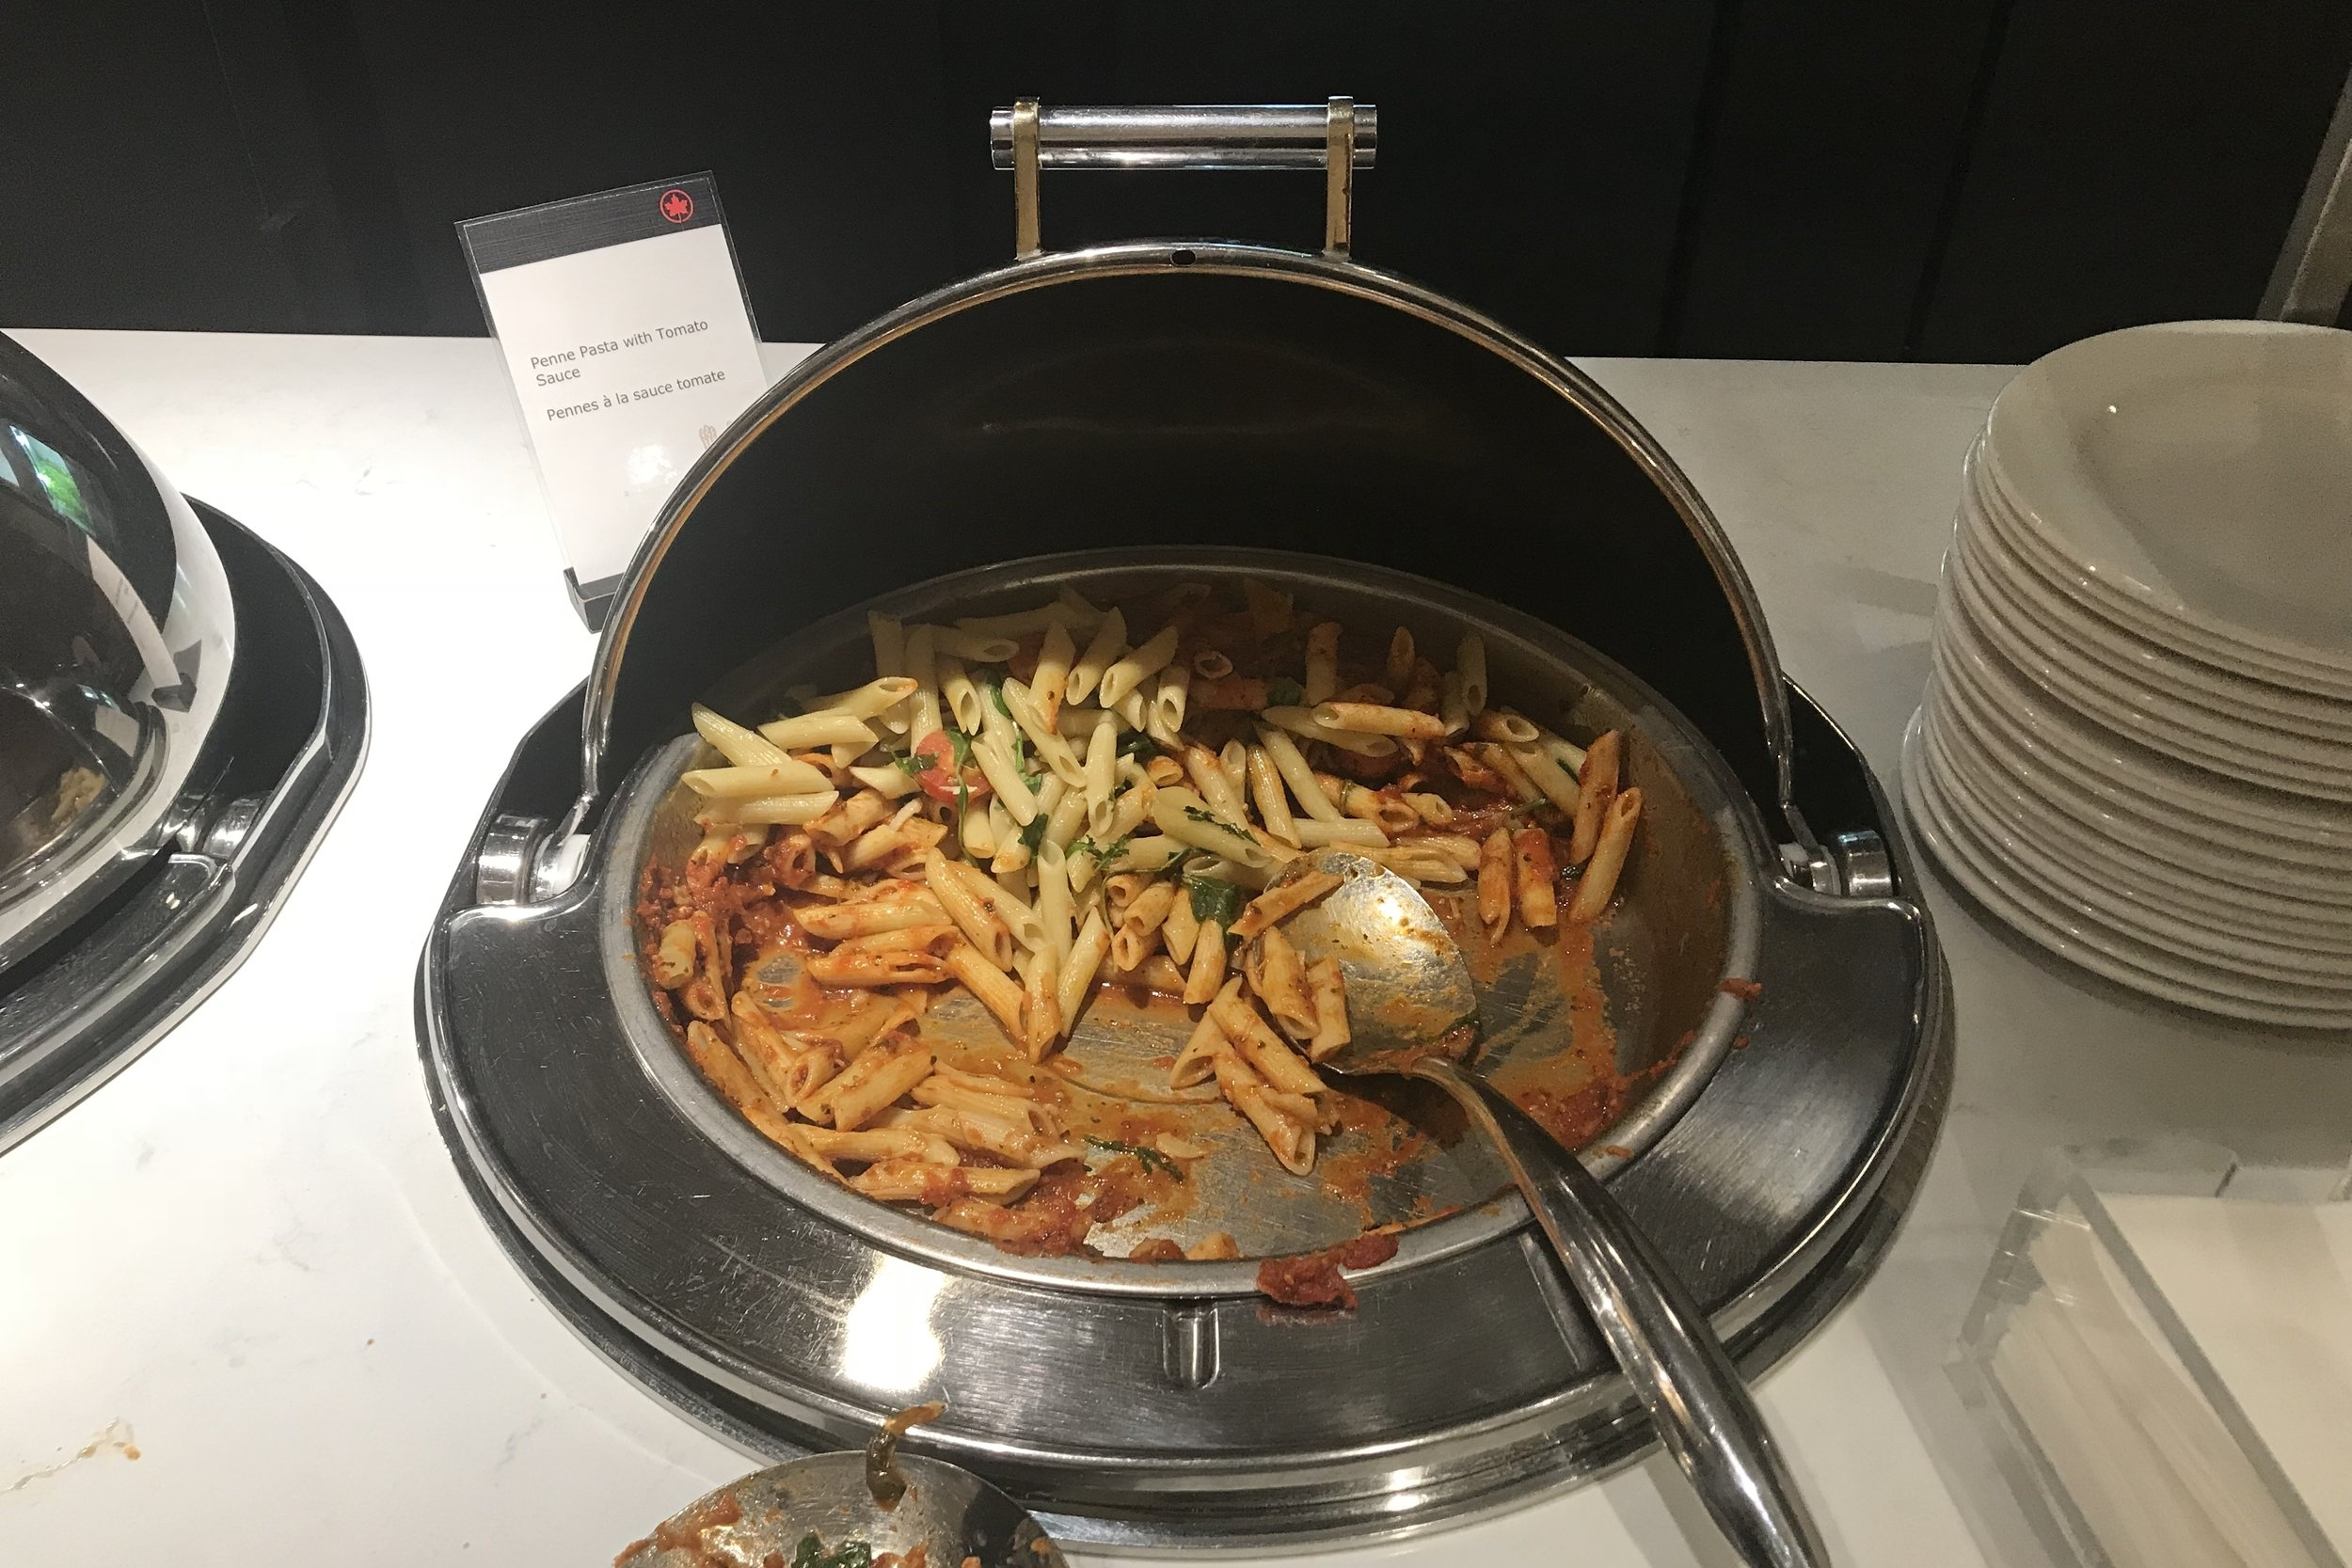 Air Canada Maple Leaf Lounge Calgary (Domestic) – Pasta